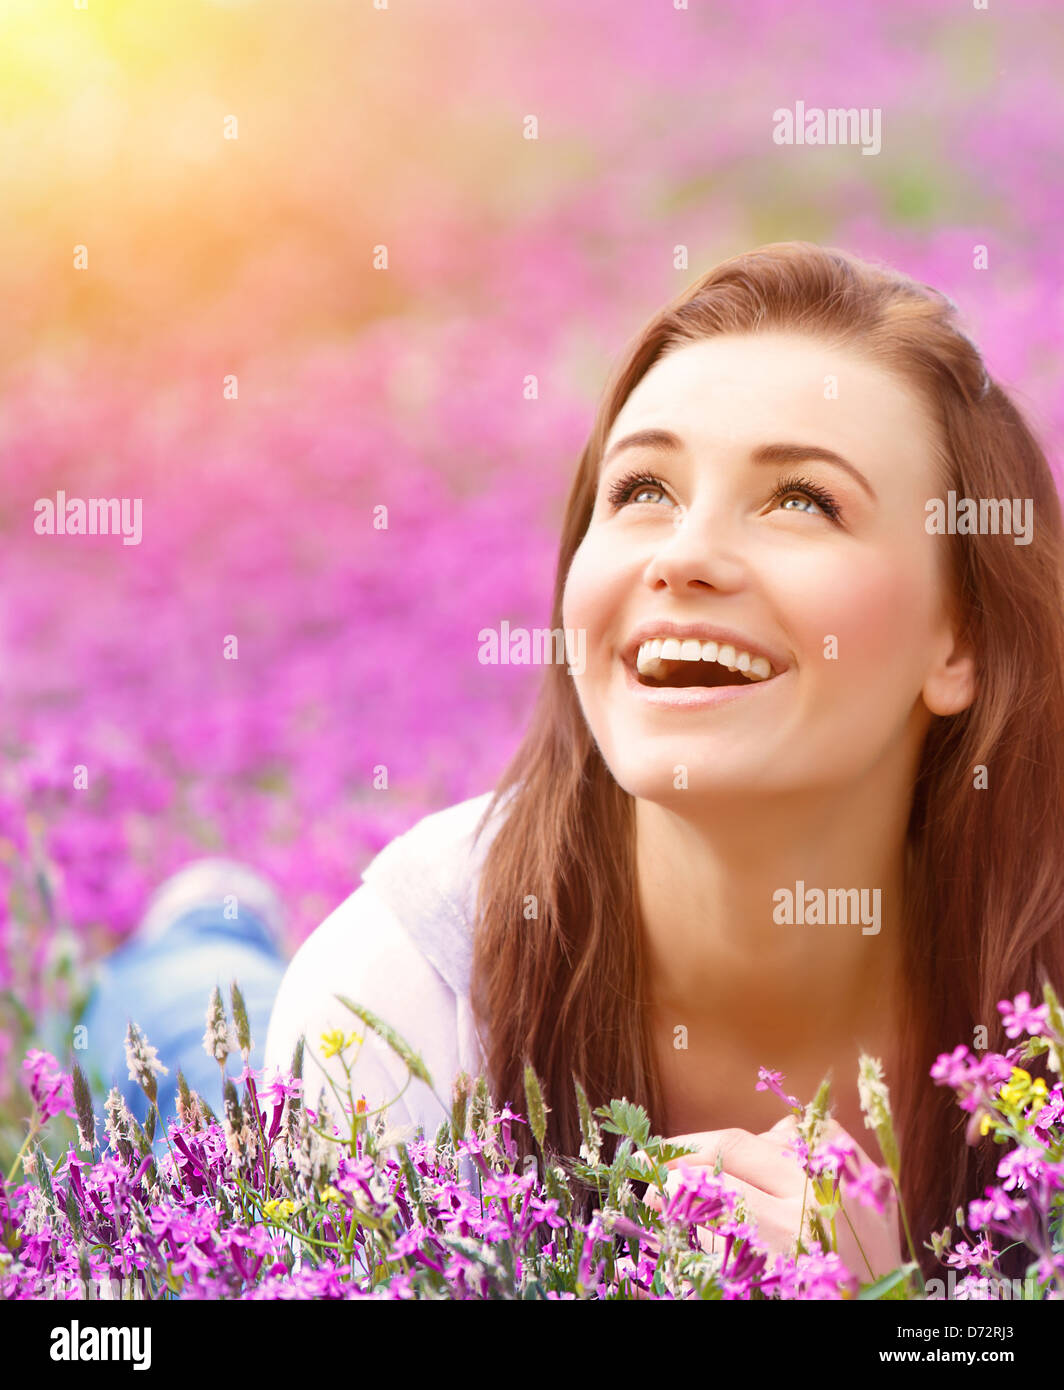 Closeup portrait of beautiful female laying down in fresh pink floral field, warm sunset light, spring nature - Stock Image